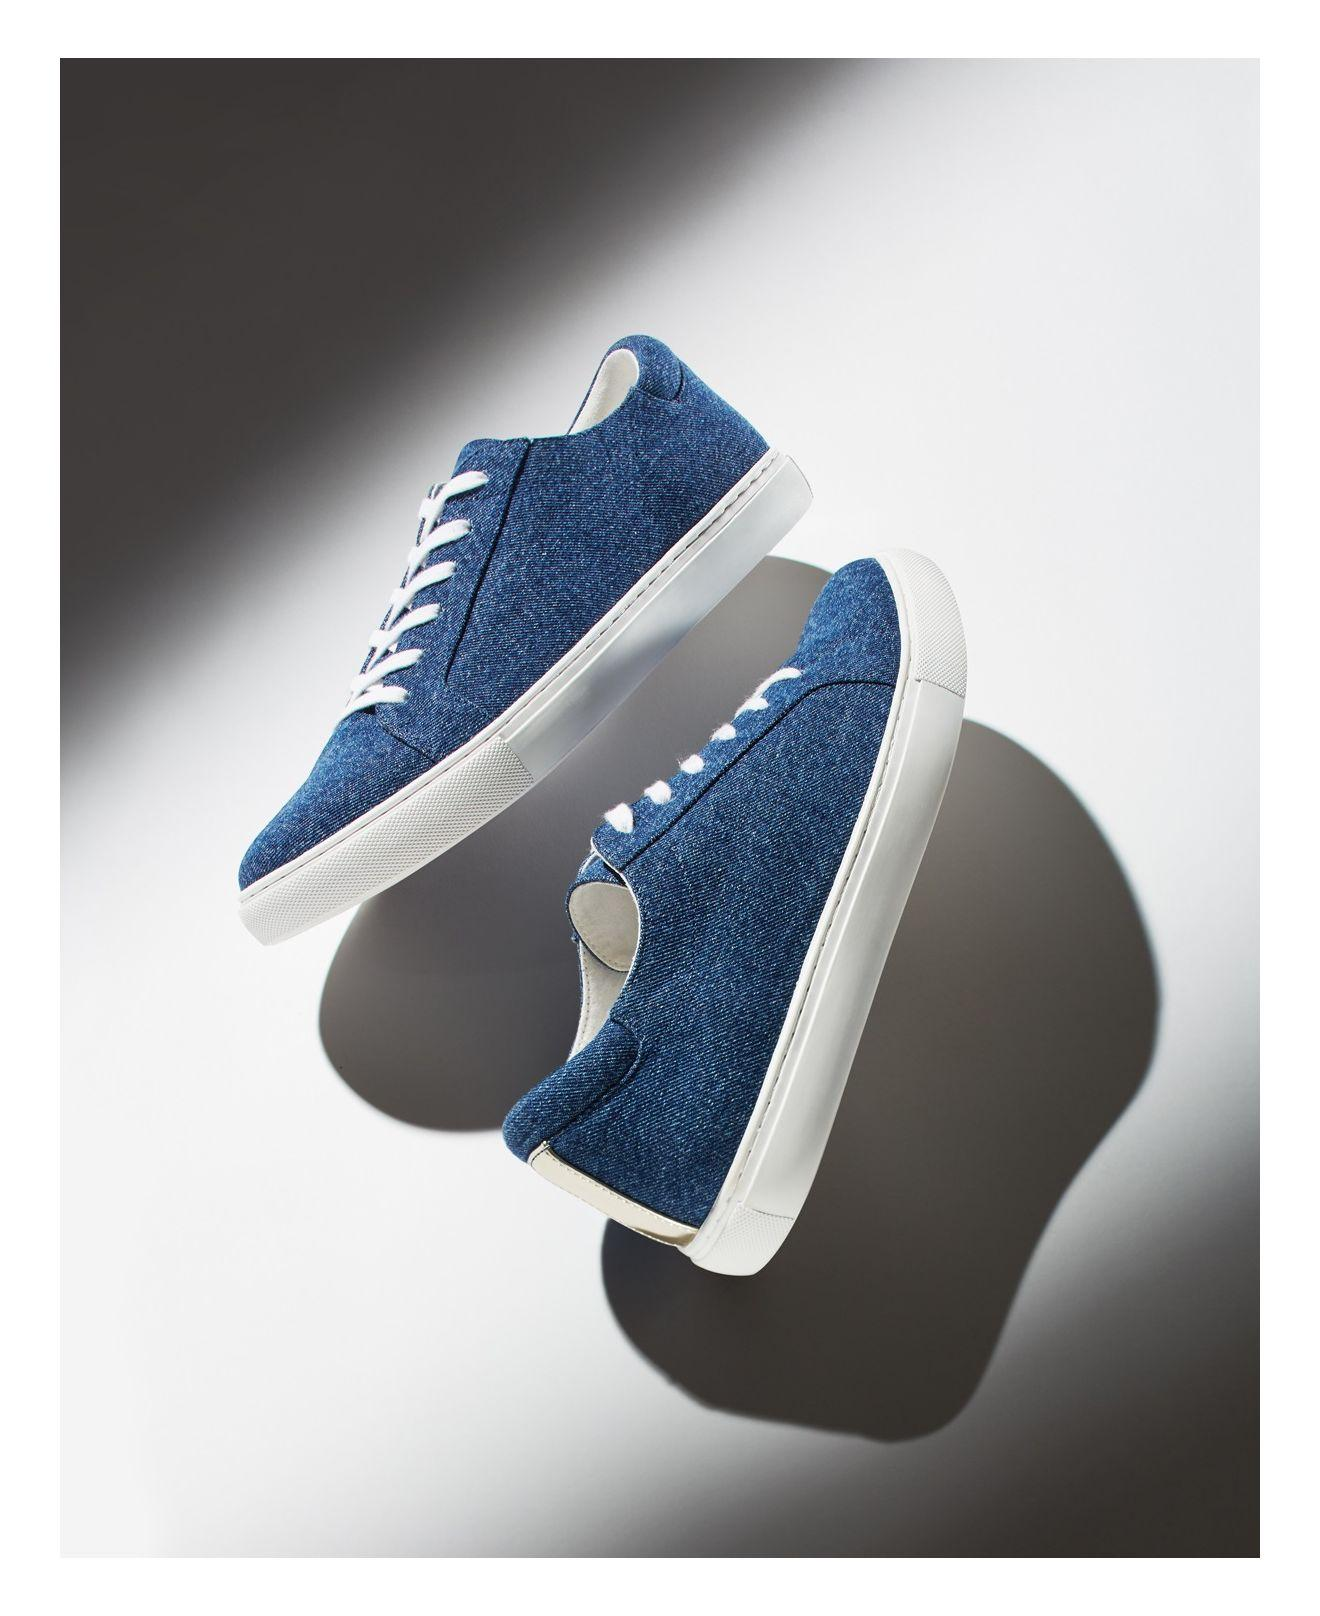 Kenneth Cole Leather Kam Lace-up Sneakers in Blue